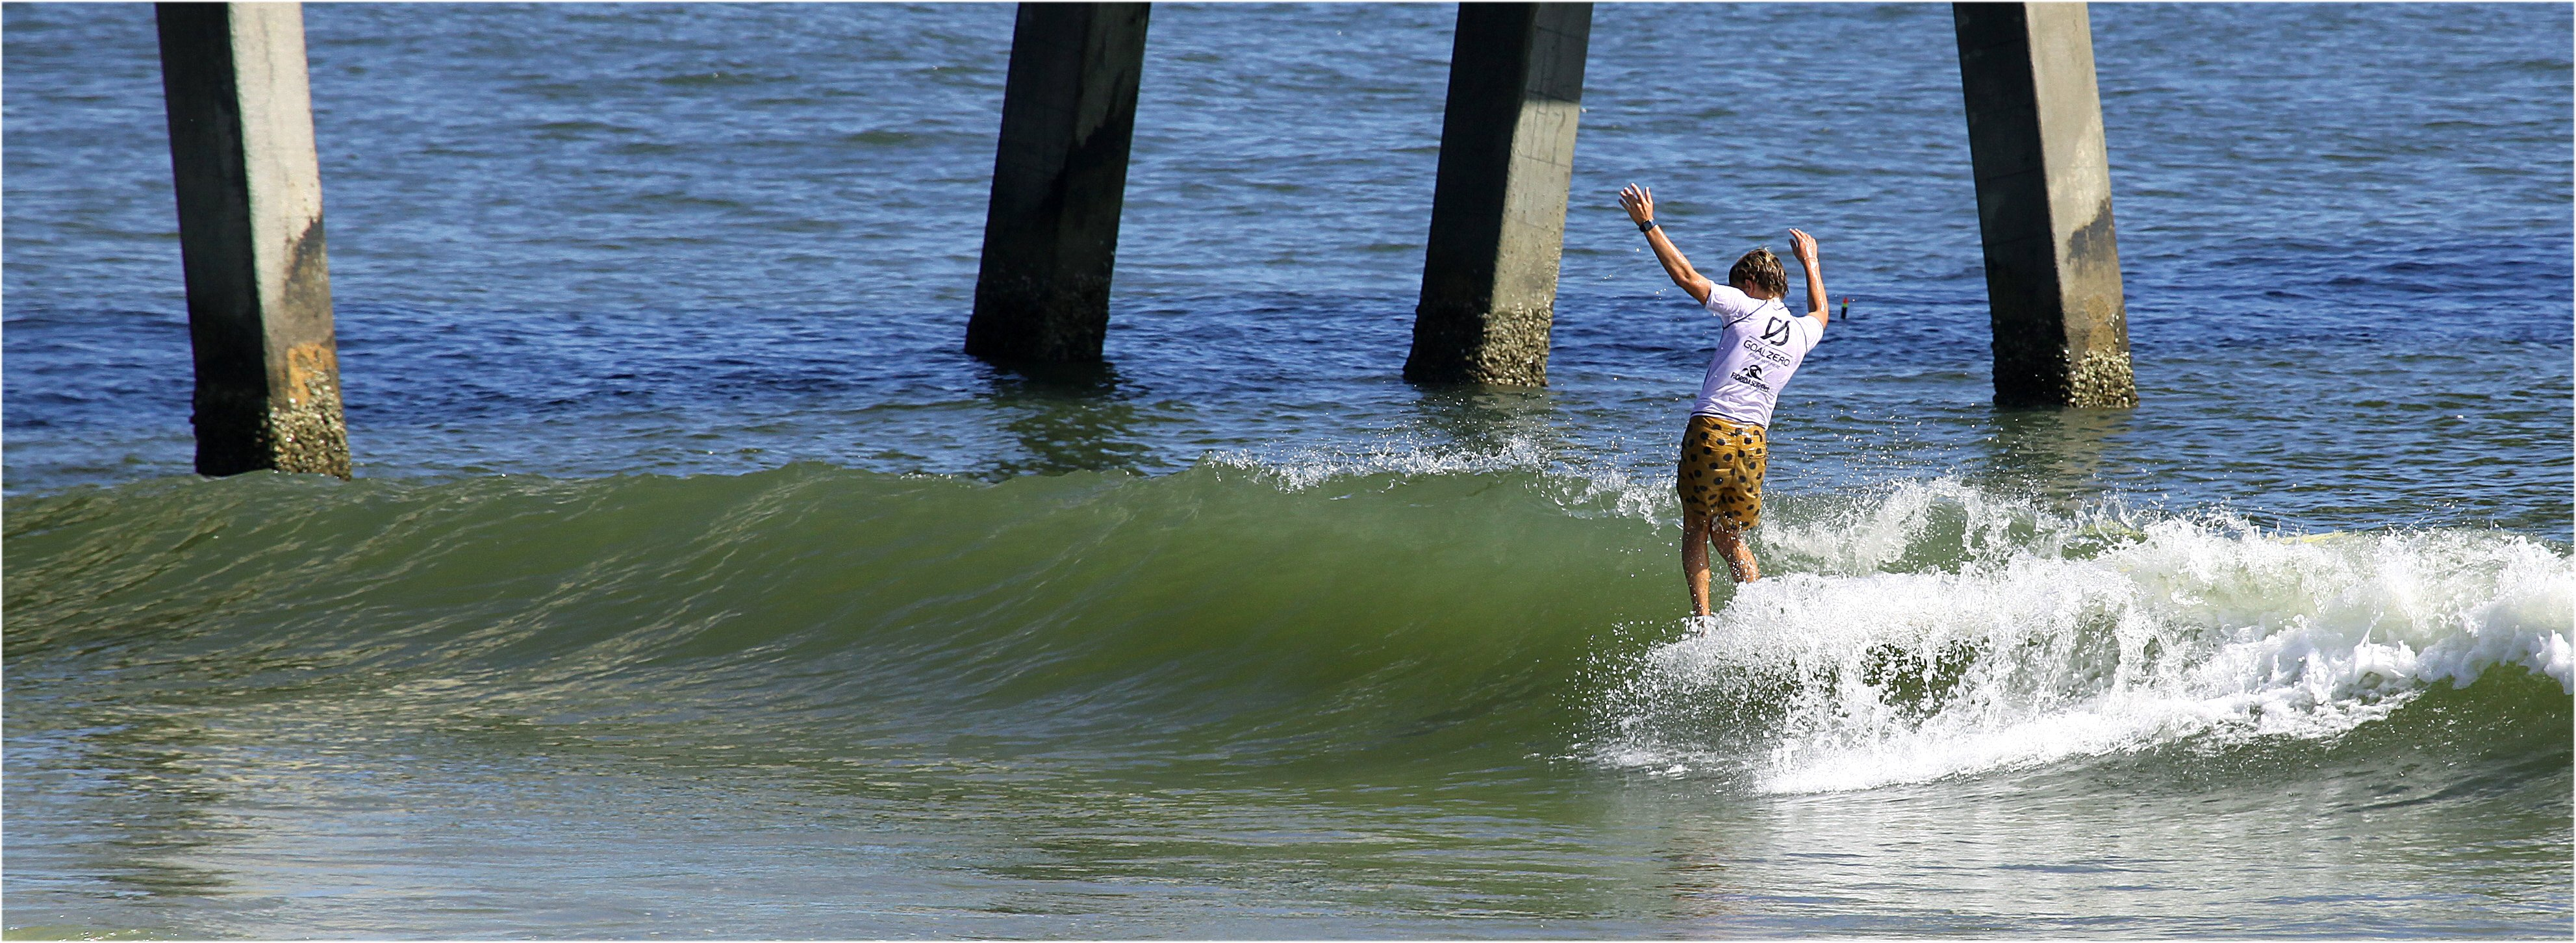 Florida Surfing Championships 2012 | Florida Surfing Association